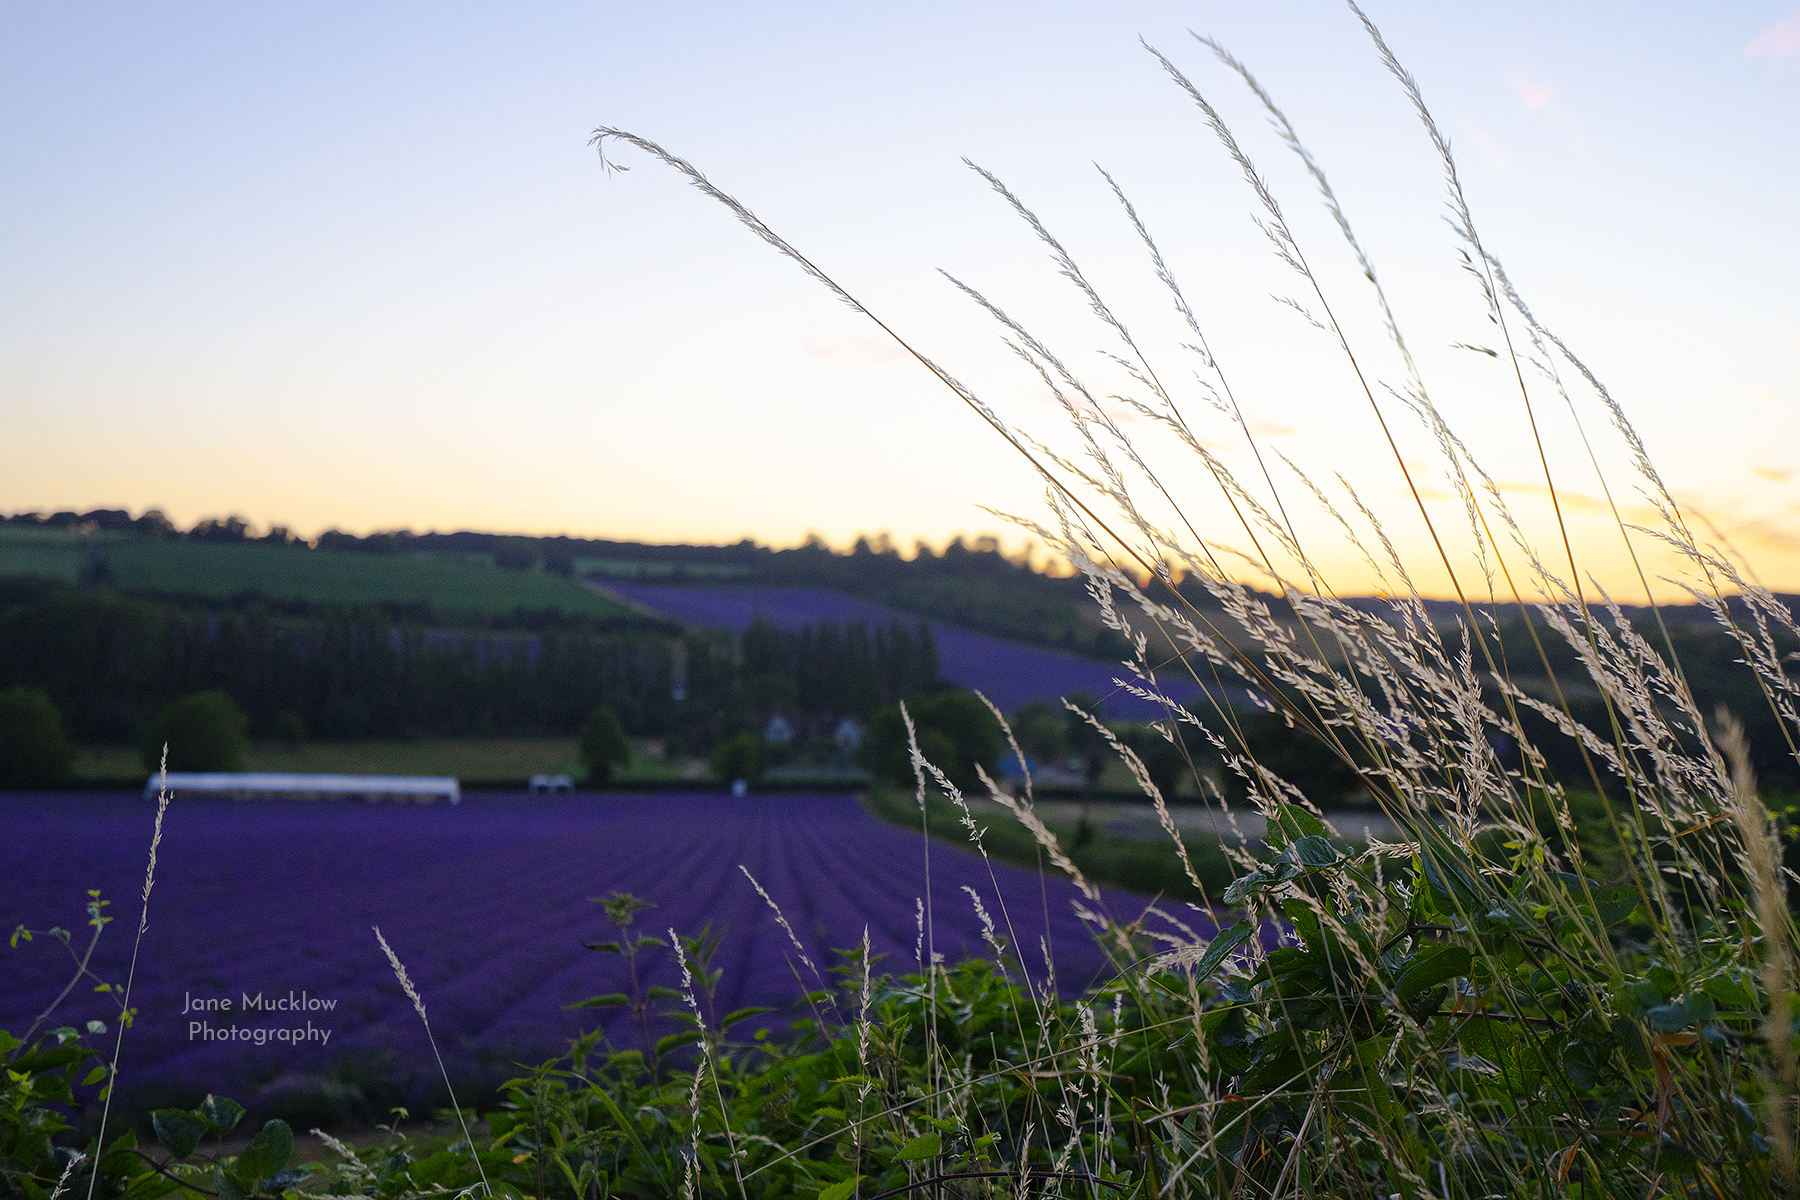 Sunset over the lavender fields, Castle Farm at Shoreham, photo by Jane Mucklow